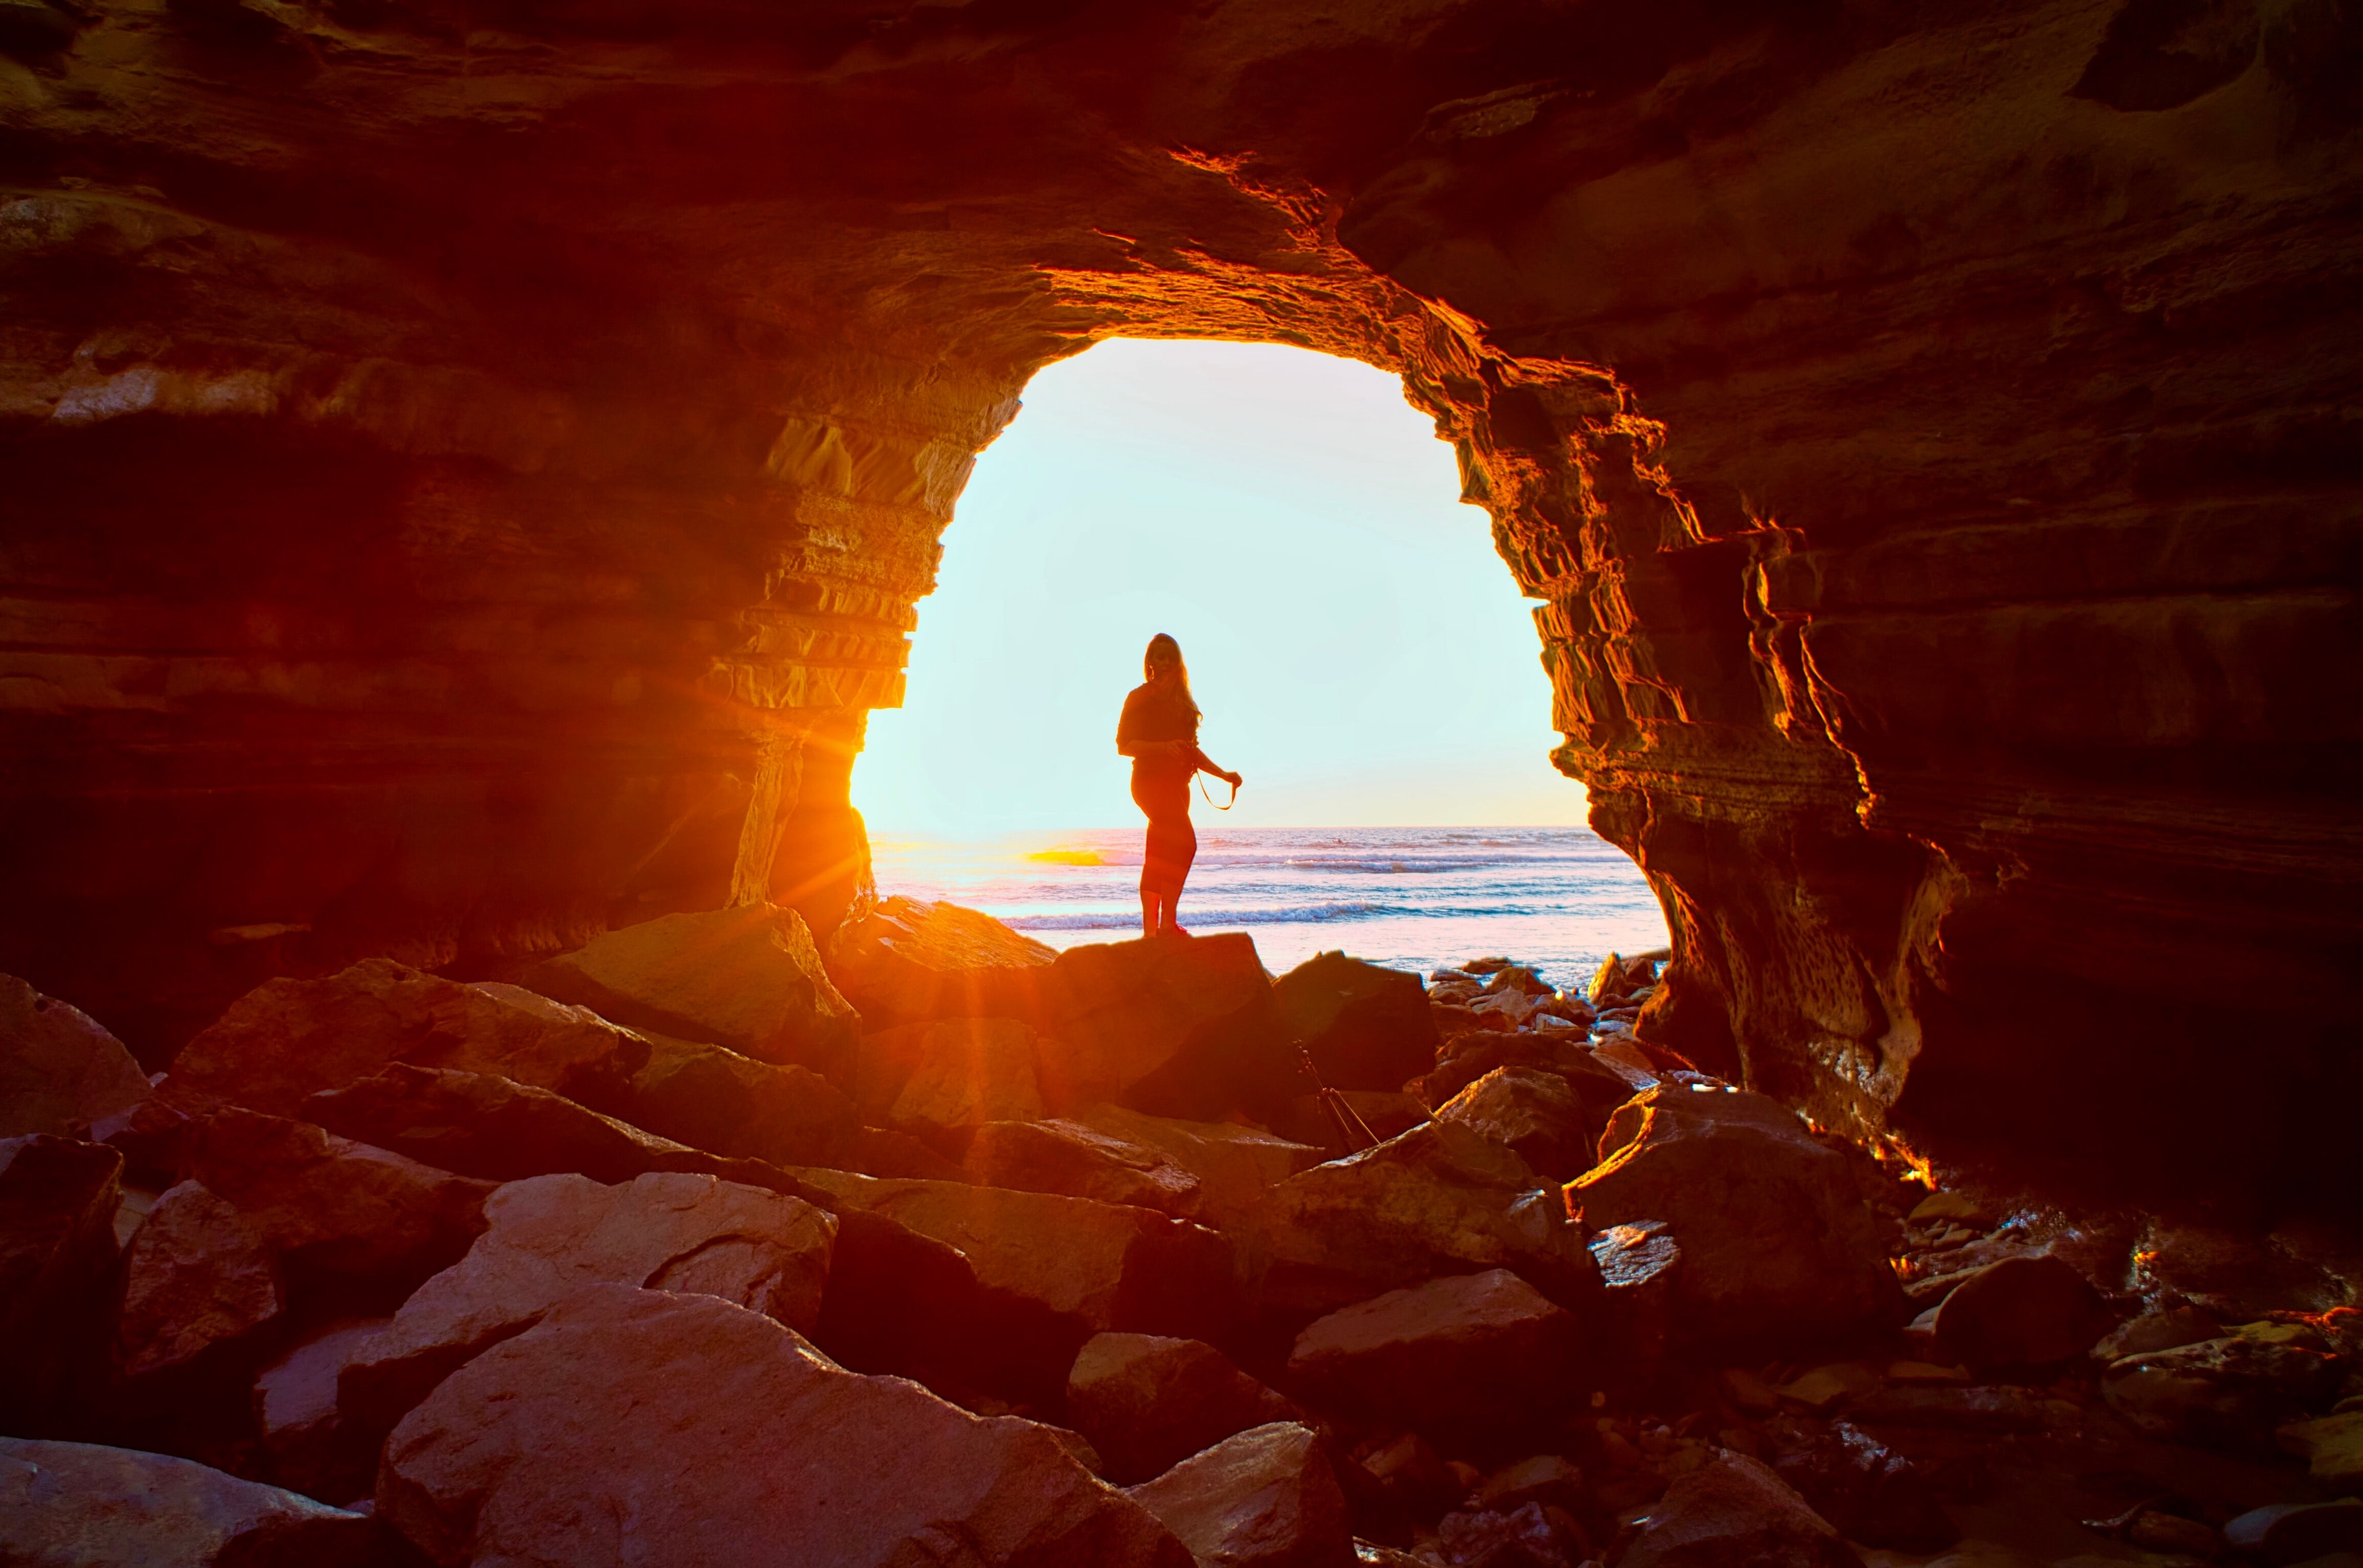 silhouette of woman in cave